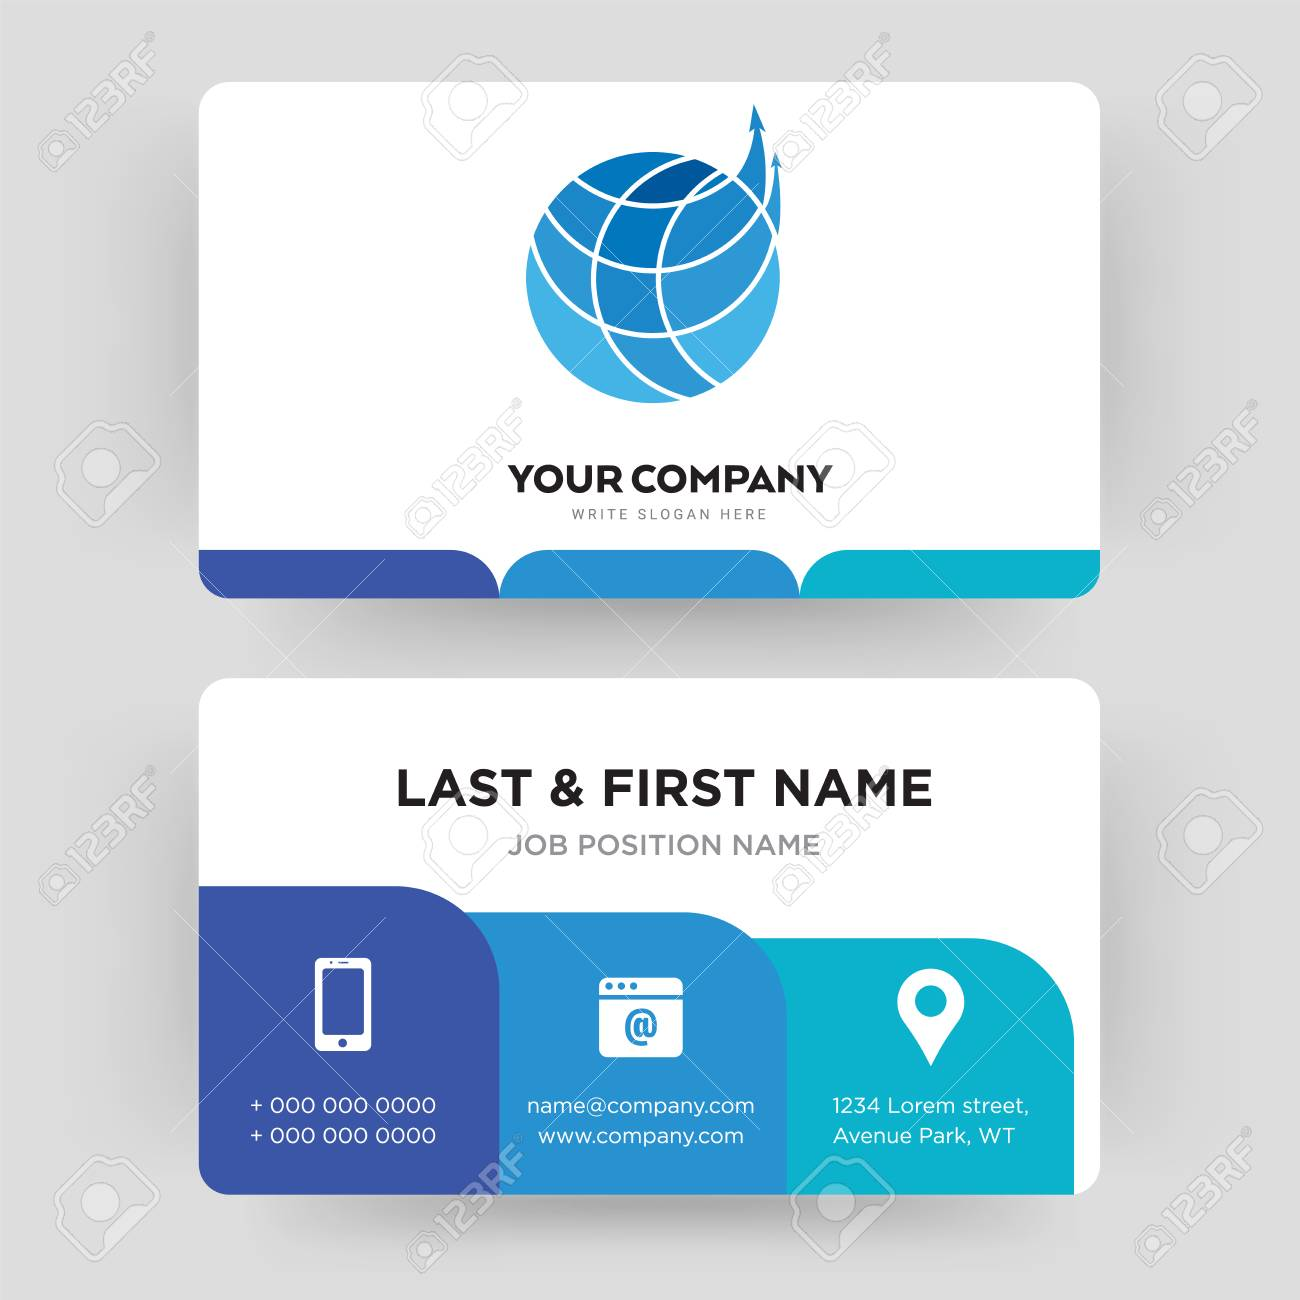 Logistics Company Business Card Design Template Visiting For Royalty Free Cliparts Vectors And Stock Illustration Image 102400868